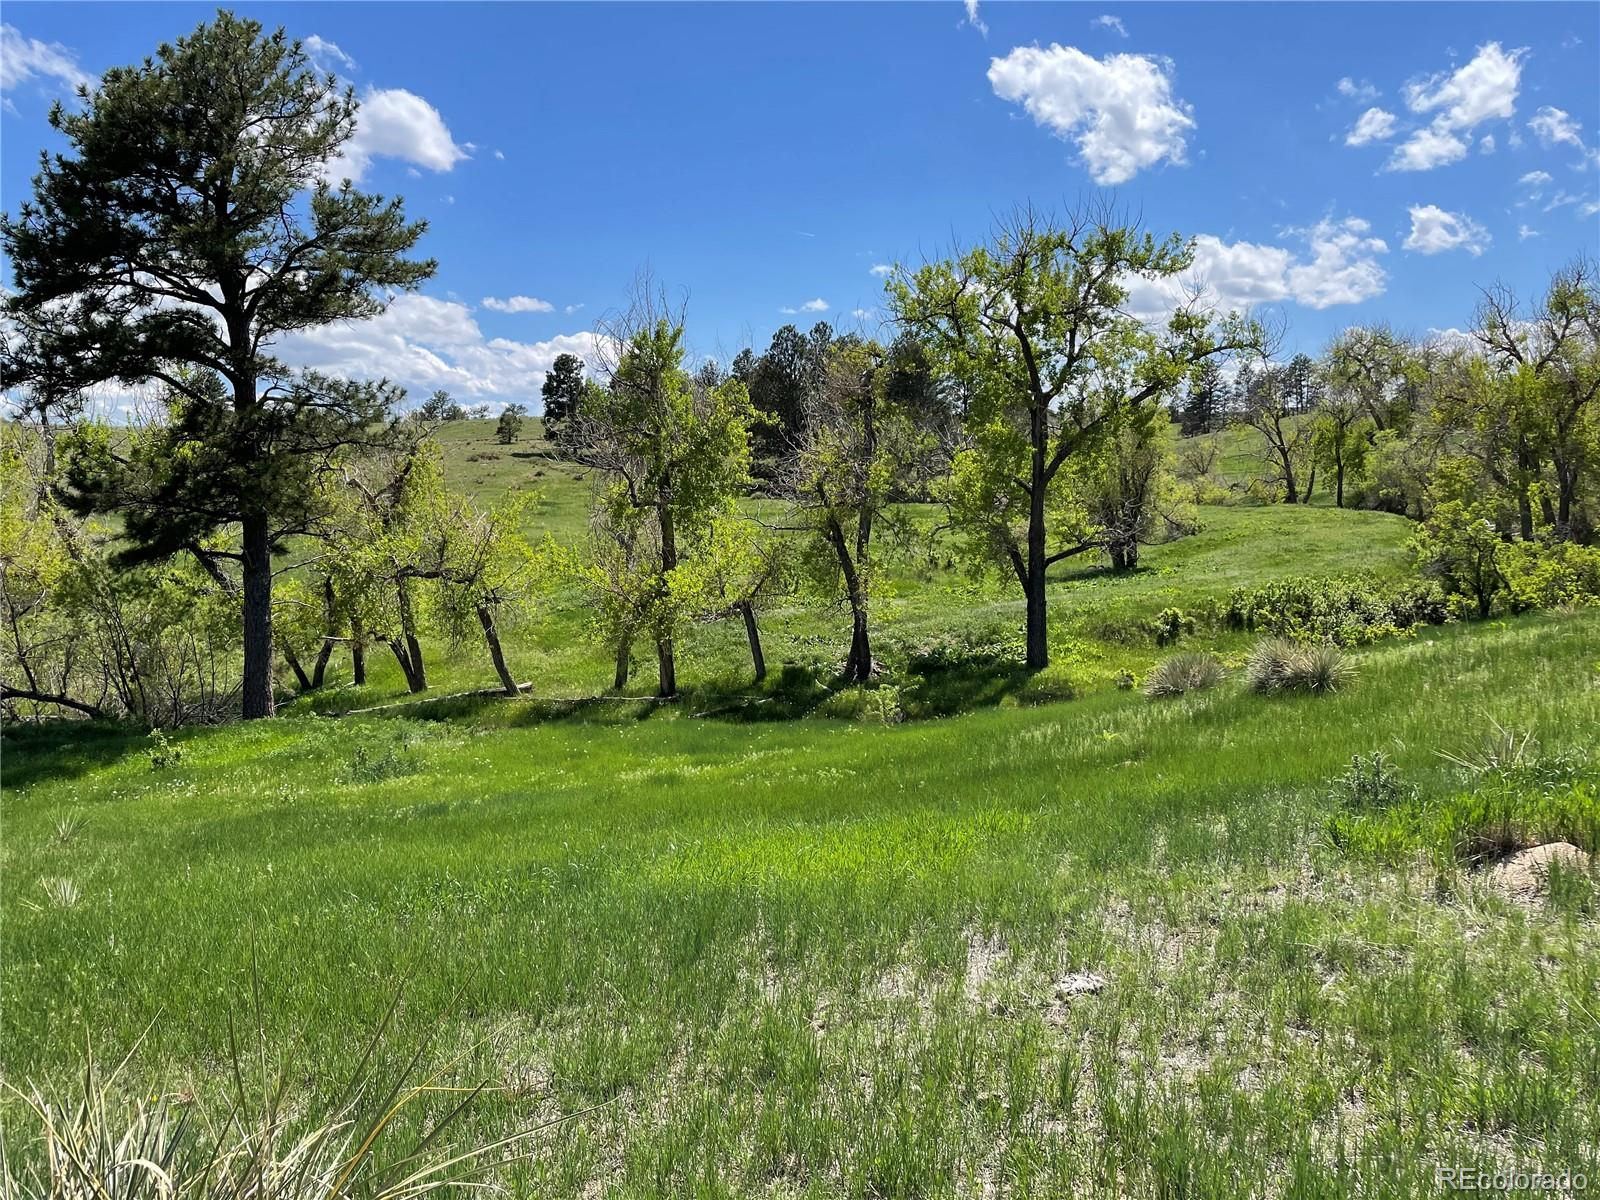 Nice, beautiful Ranch consisting of 858 Acres. Some feed could be produced on the ranch for livestock. Water available for livestock, horses, etc. 30% + of the ranch is healthy Pine trees. Great building sites for a dream home on a nice Ranch. Has been in the same family since 1932. Lots of wildlife on the Ranch. Property could be divided to sell of a portion to minimize investment and have a secluded home on a portion of the Ranch.